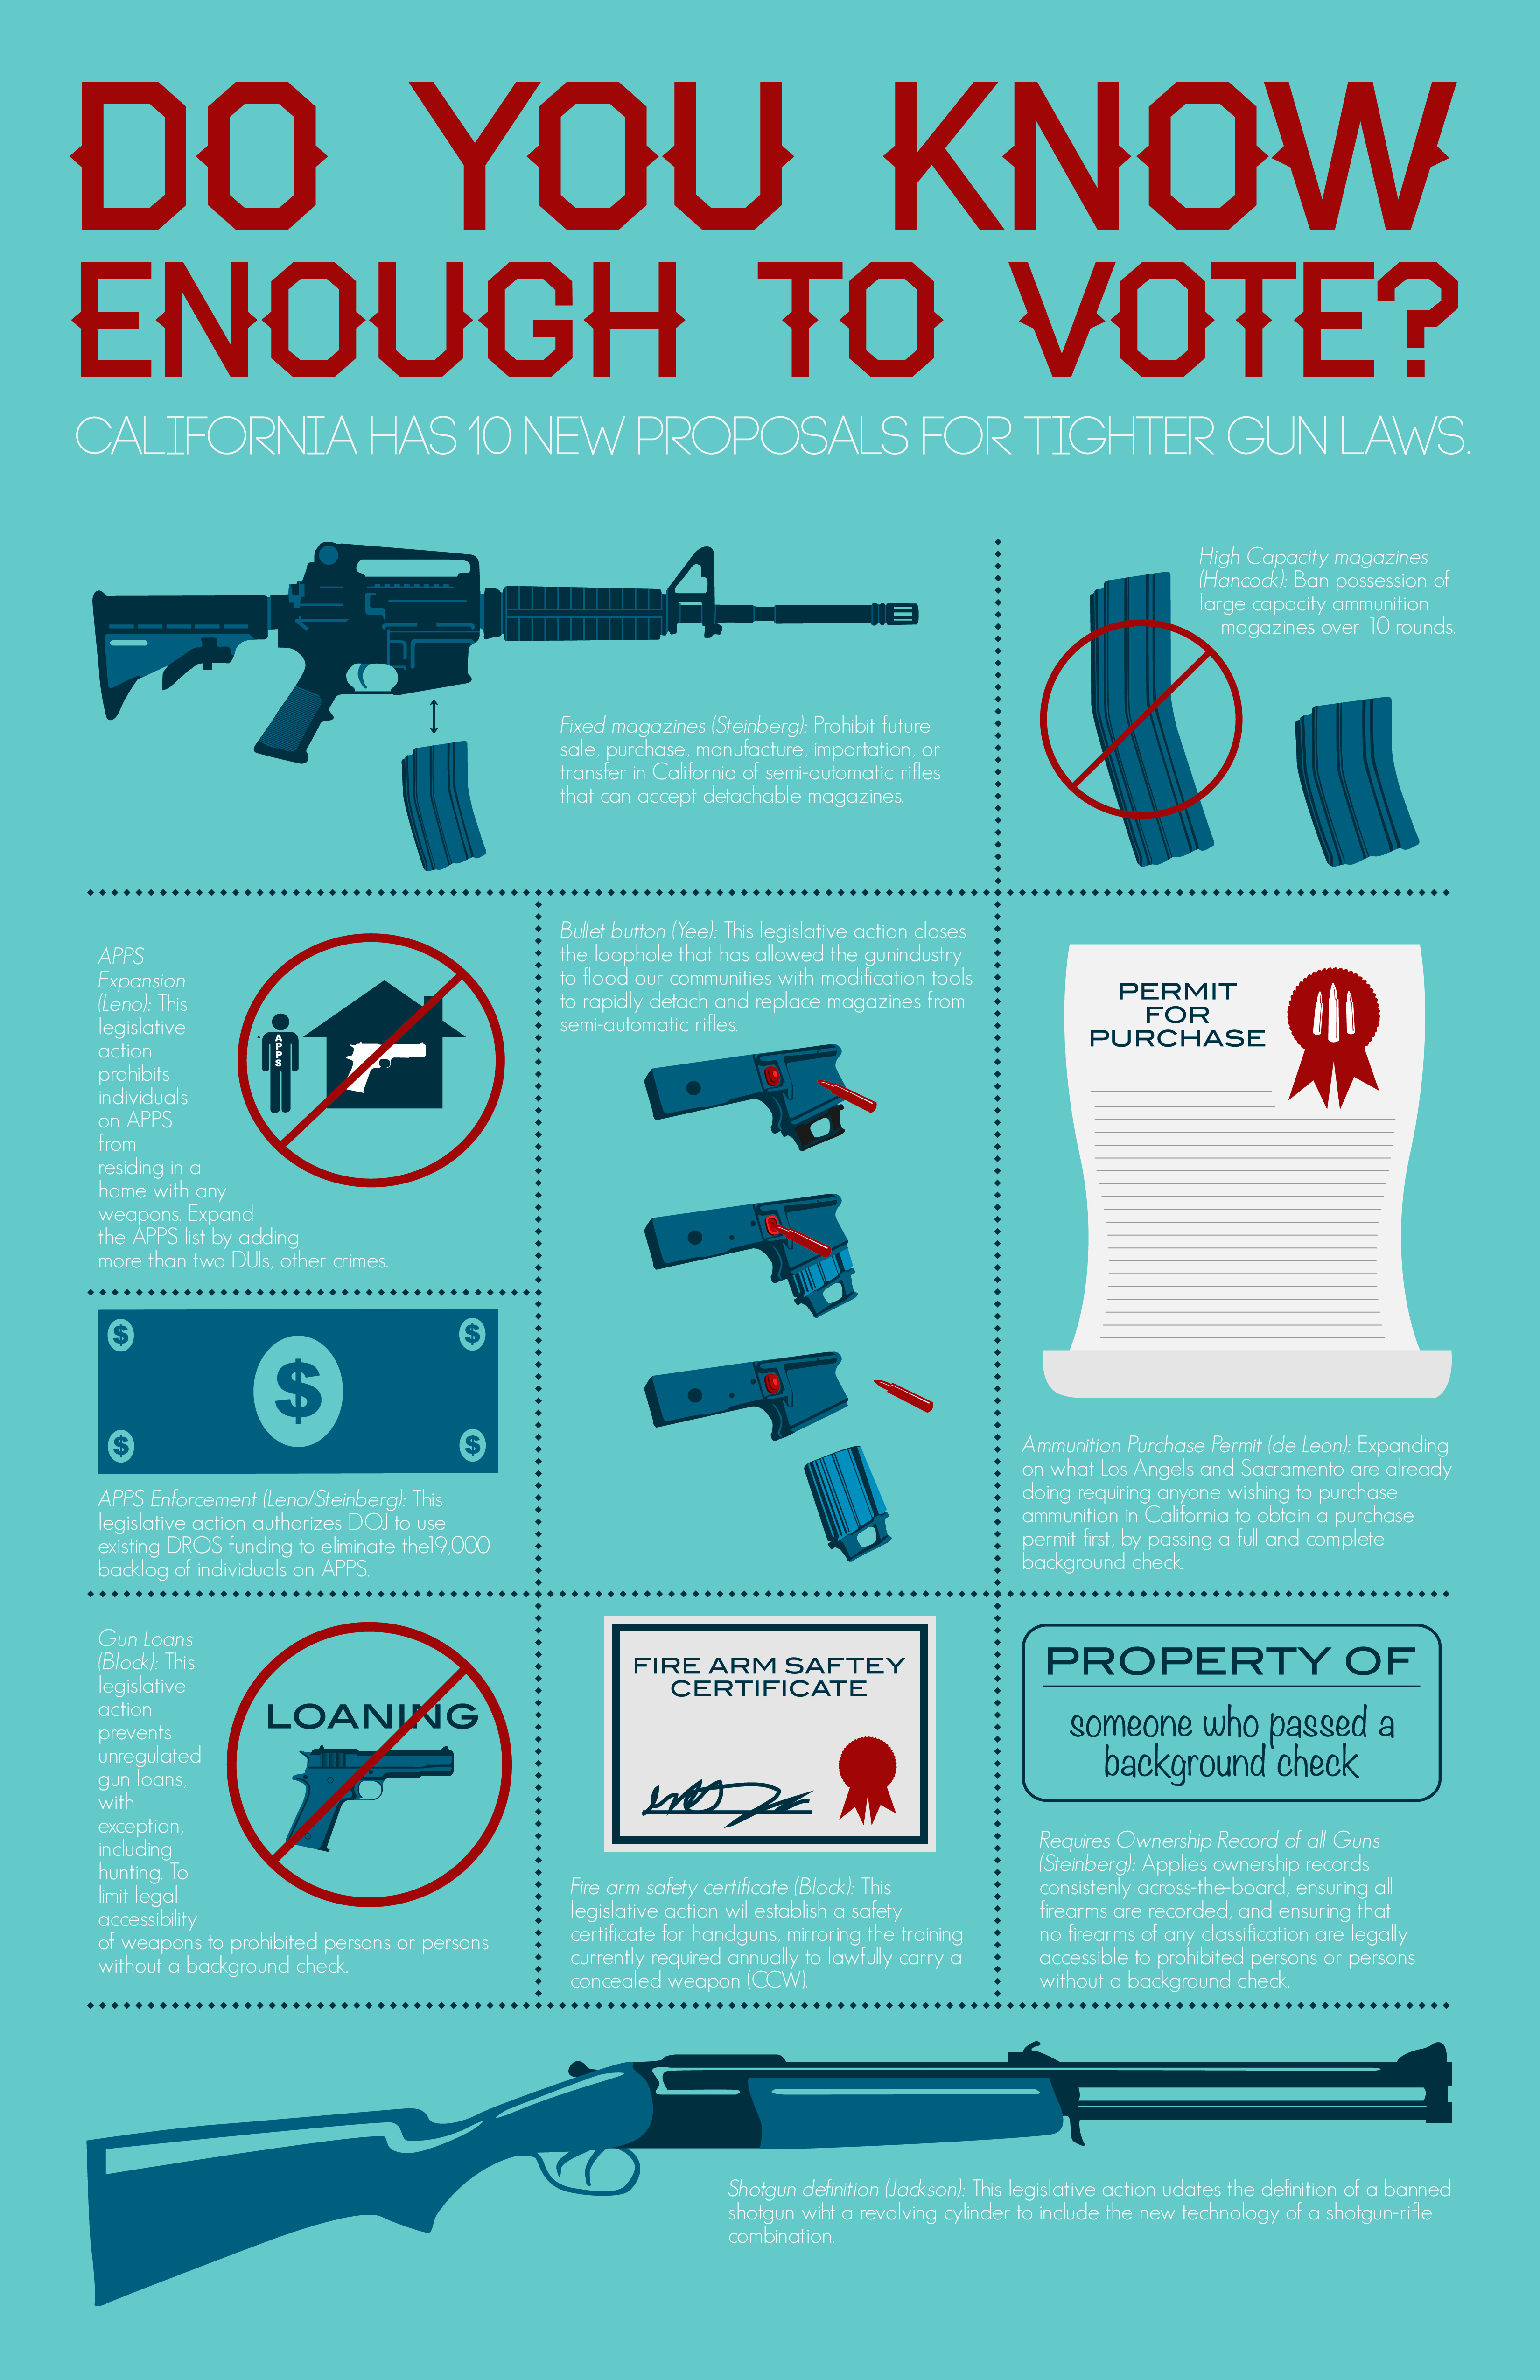 semi automatic firearms should not be banned